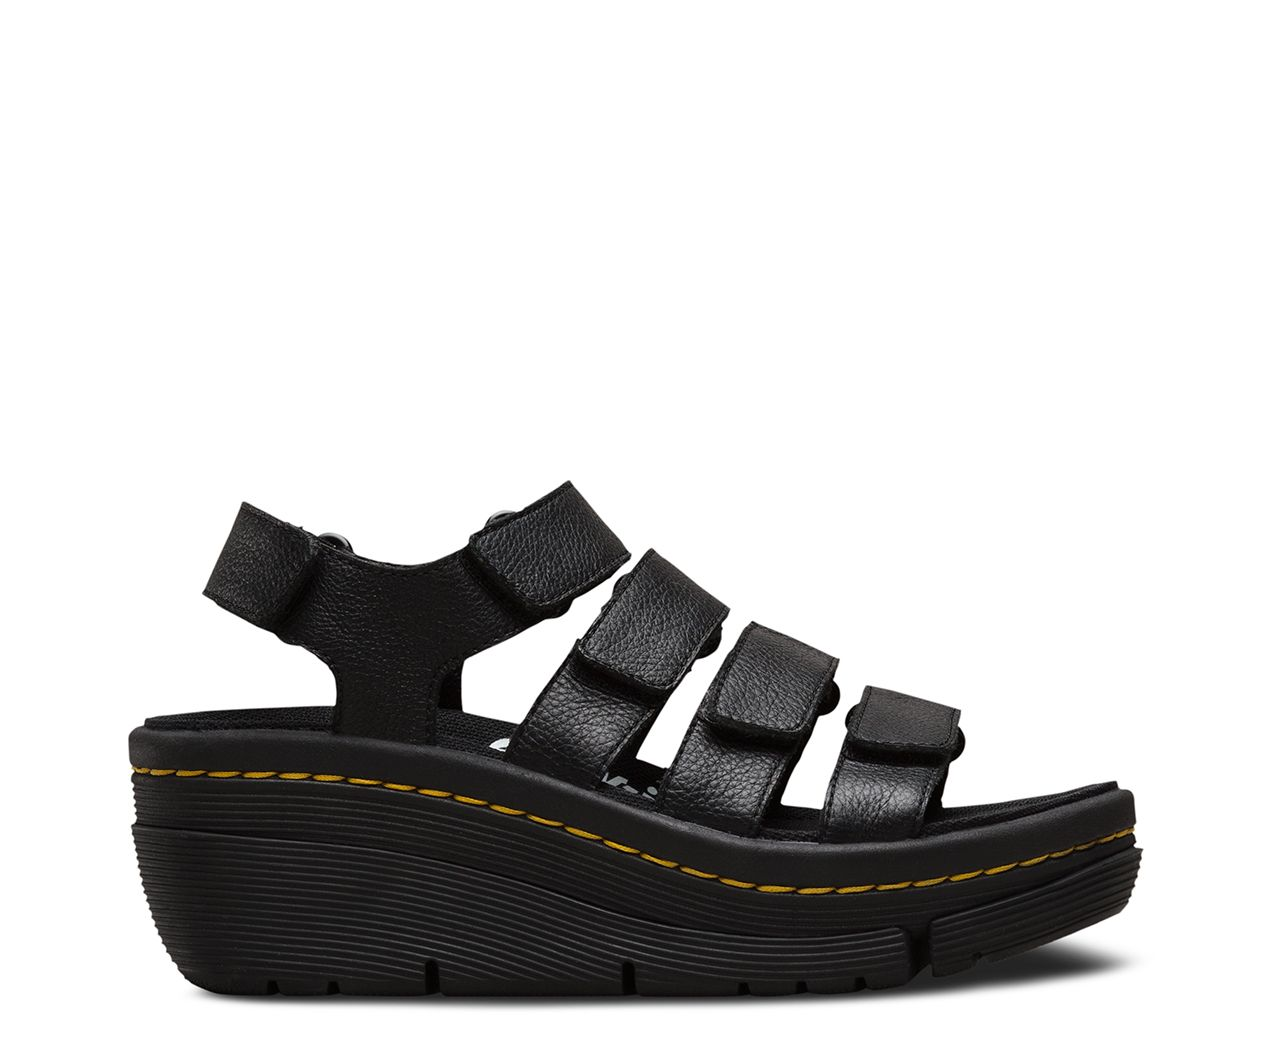 df9d7e5368256 Dr martens verity in 2019 | My Style | Dr martens, Sandals, Velcro ...